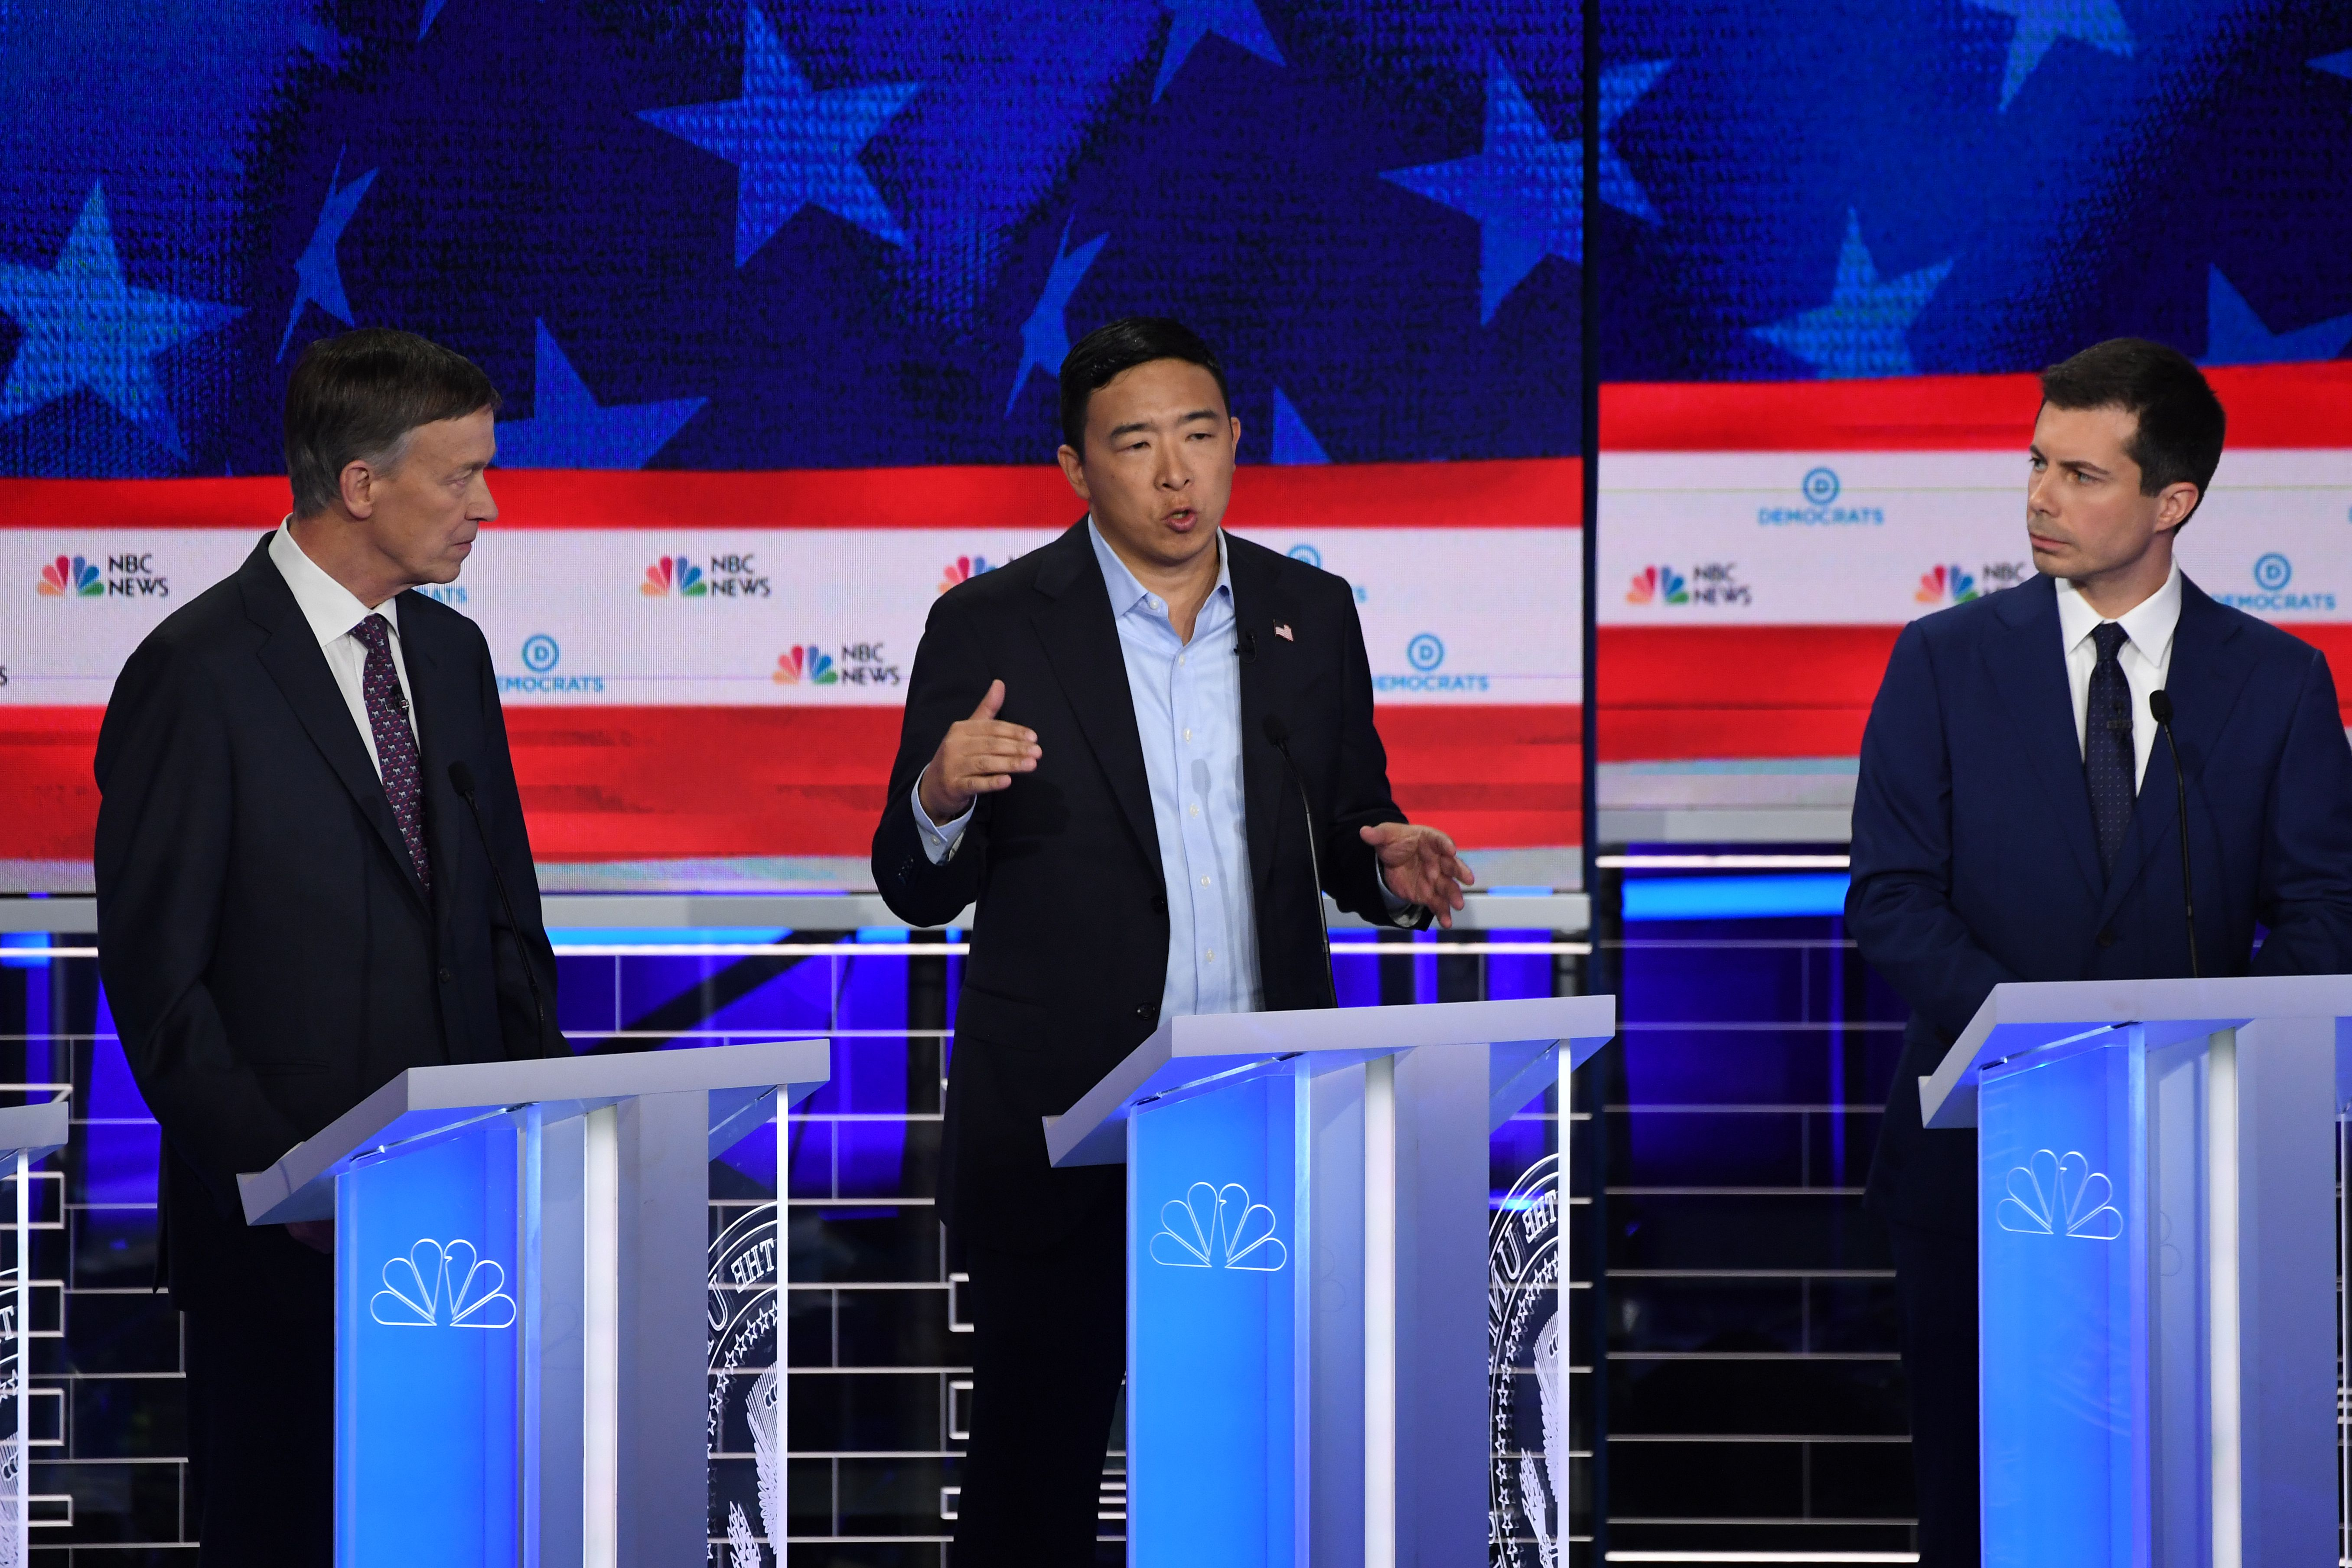 Democratic presidential hopefuls (fromL) former Governor of Colorado John Hickenlooper, US entrepreneur Andrew Yang and Mayor of South Bend, Indiana Pete Buttigieg participate in the second Democratic primary debate of the 2020 presidential campaign season hosted by NBC News at the Adrienne Arsht Center for the Performing Arts in Miami, Florida, June 27, 2019. (Photo by SAUL LOEB / AFP)        (Photo credit should read SAUL LOEB/AFP/Getty Images)